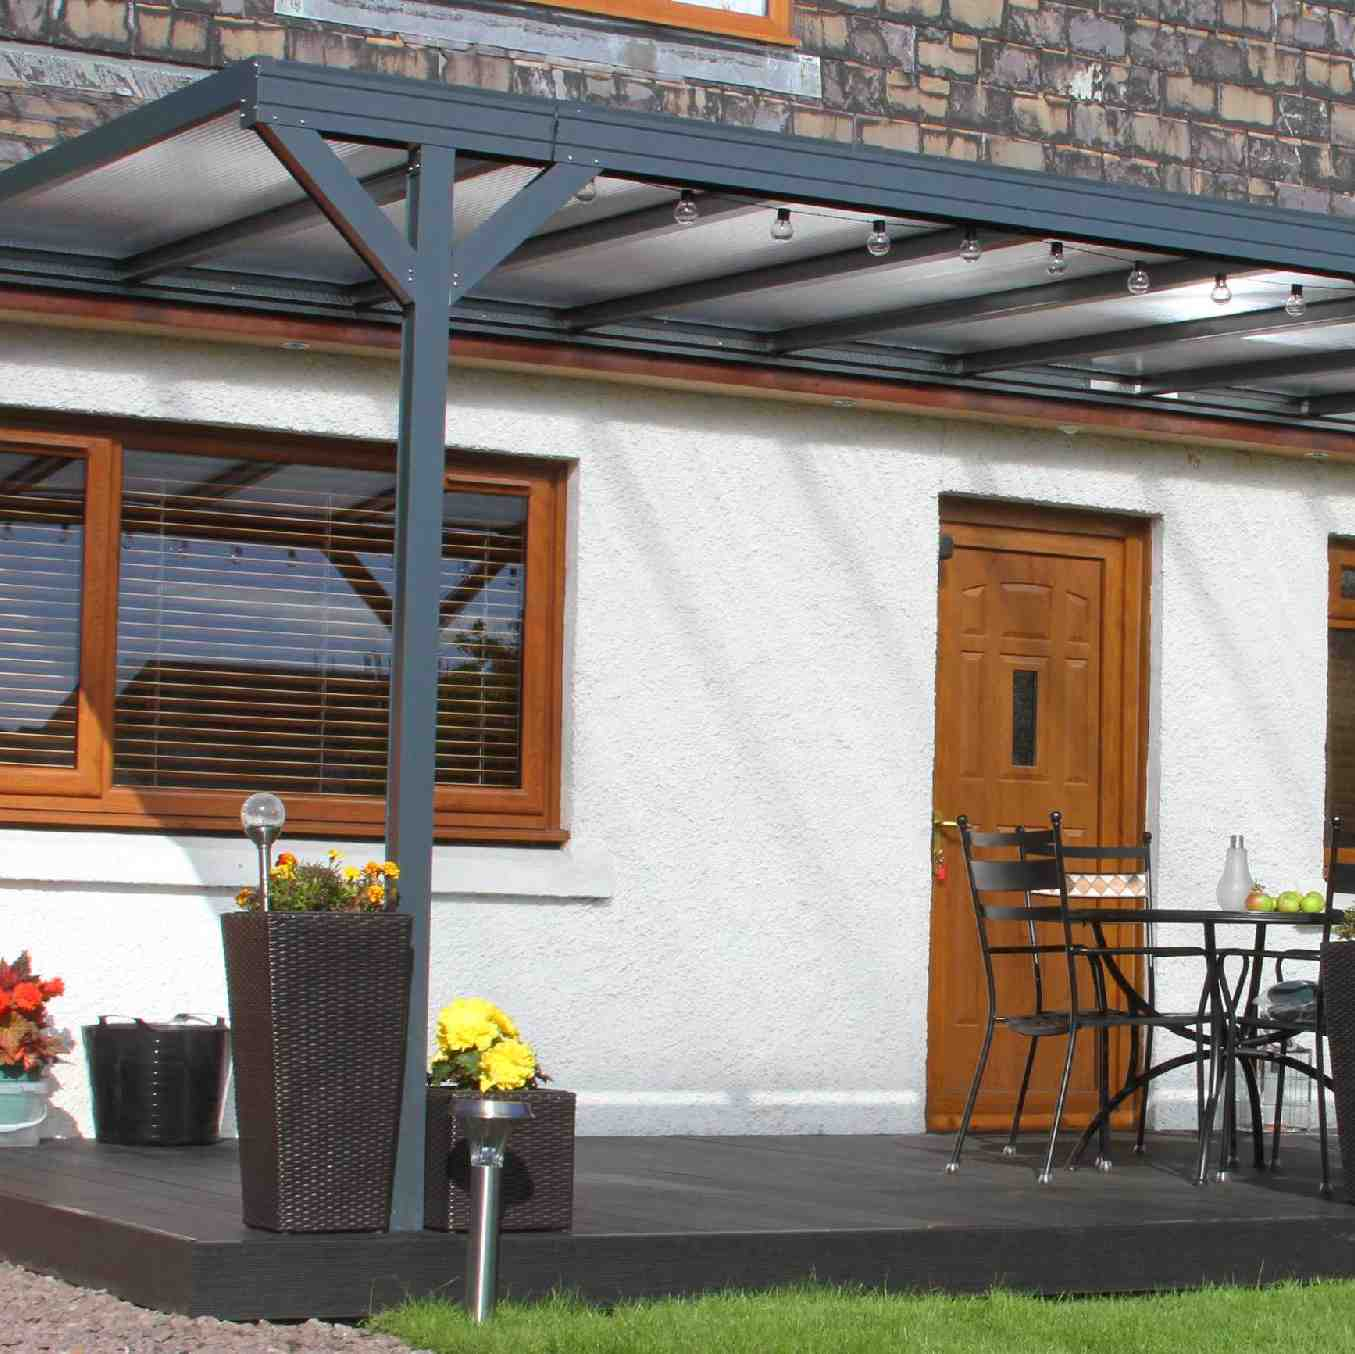 Omega Verandah, Anthracite Grey, 16mm Polycarbonate Glazing - 6.3m (W) x 2.0m (P), (4) Supporting Posts